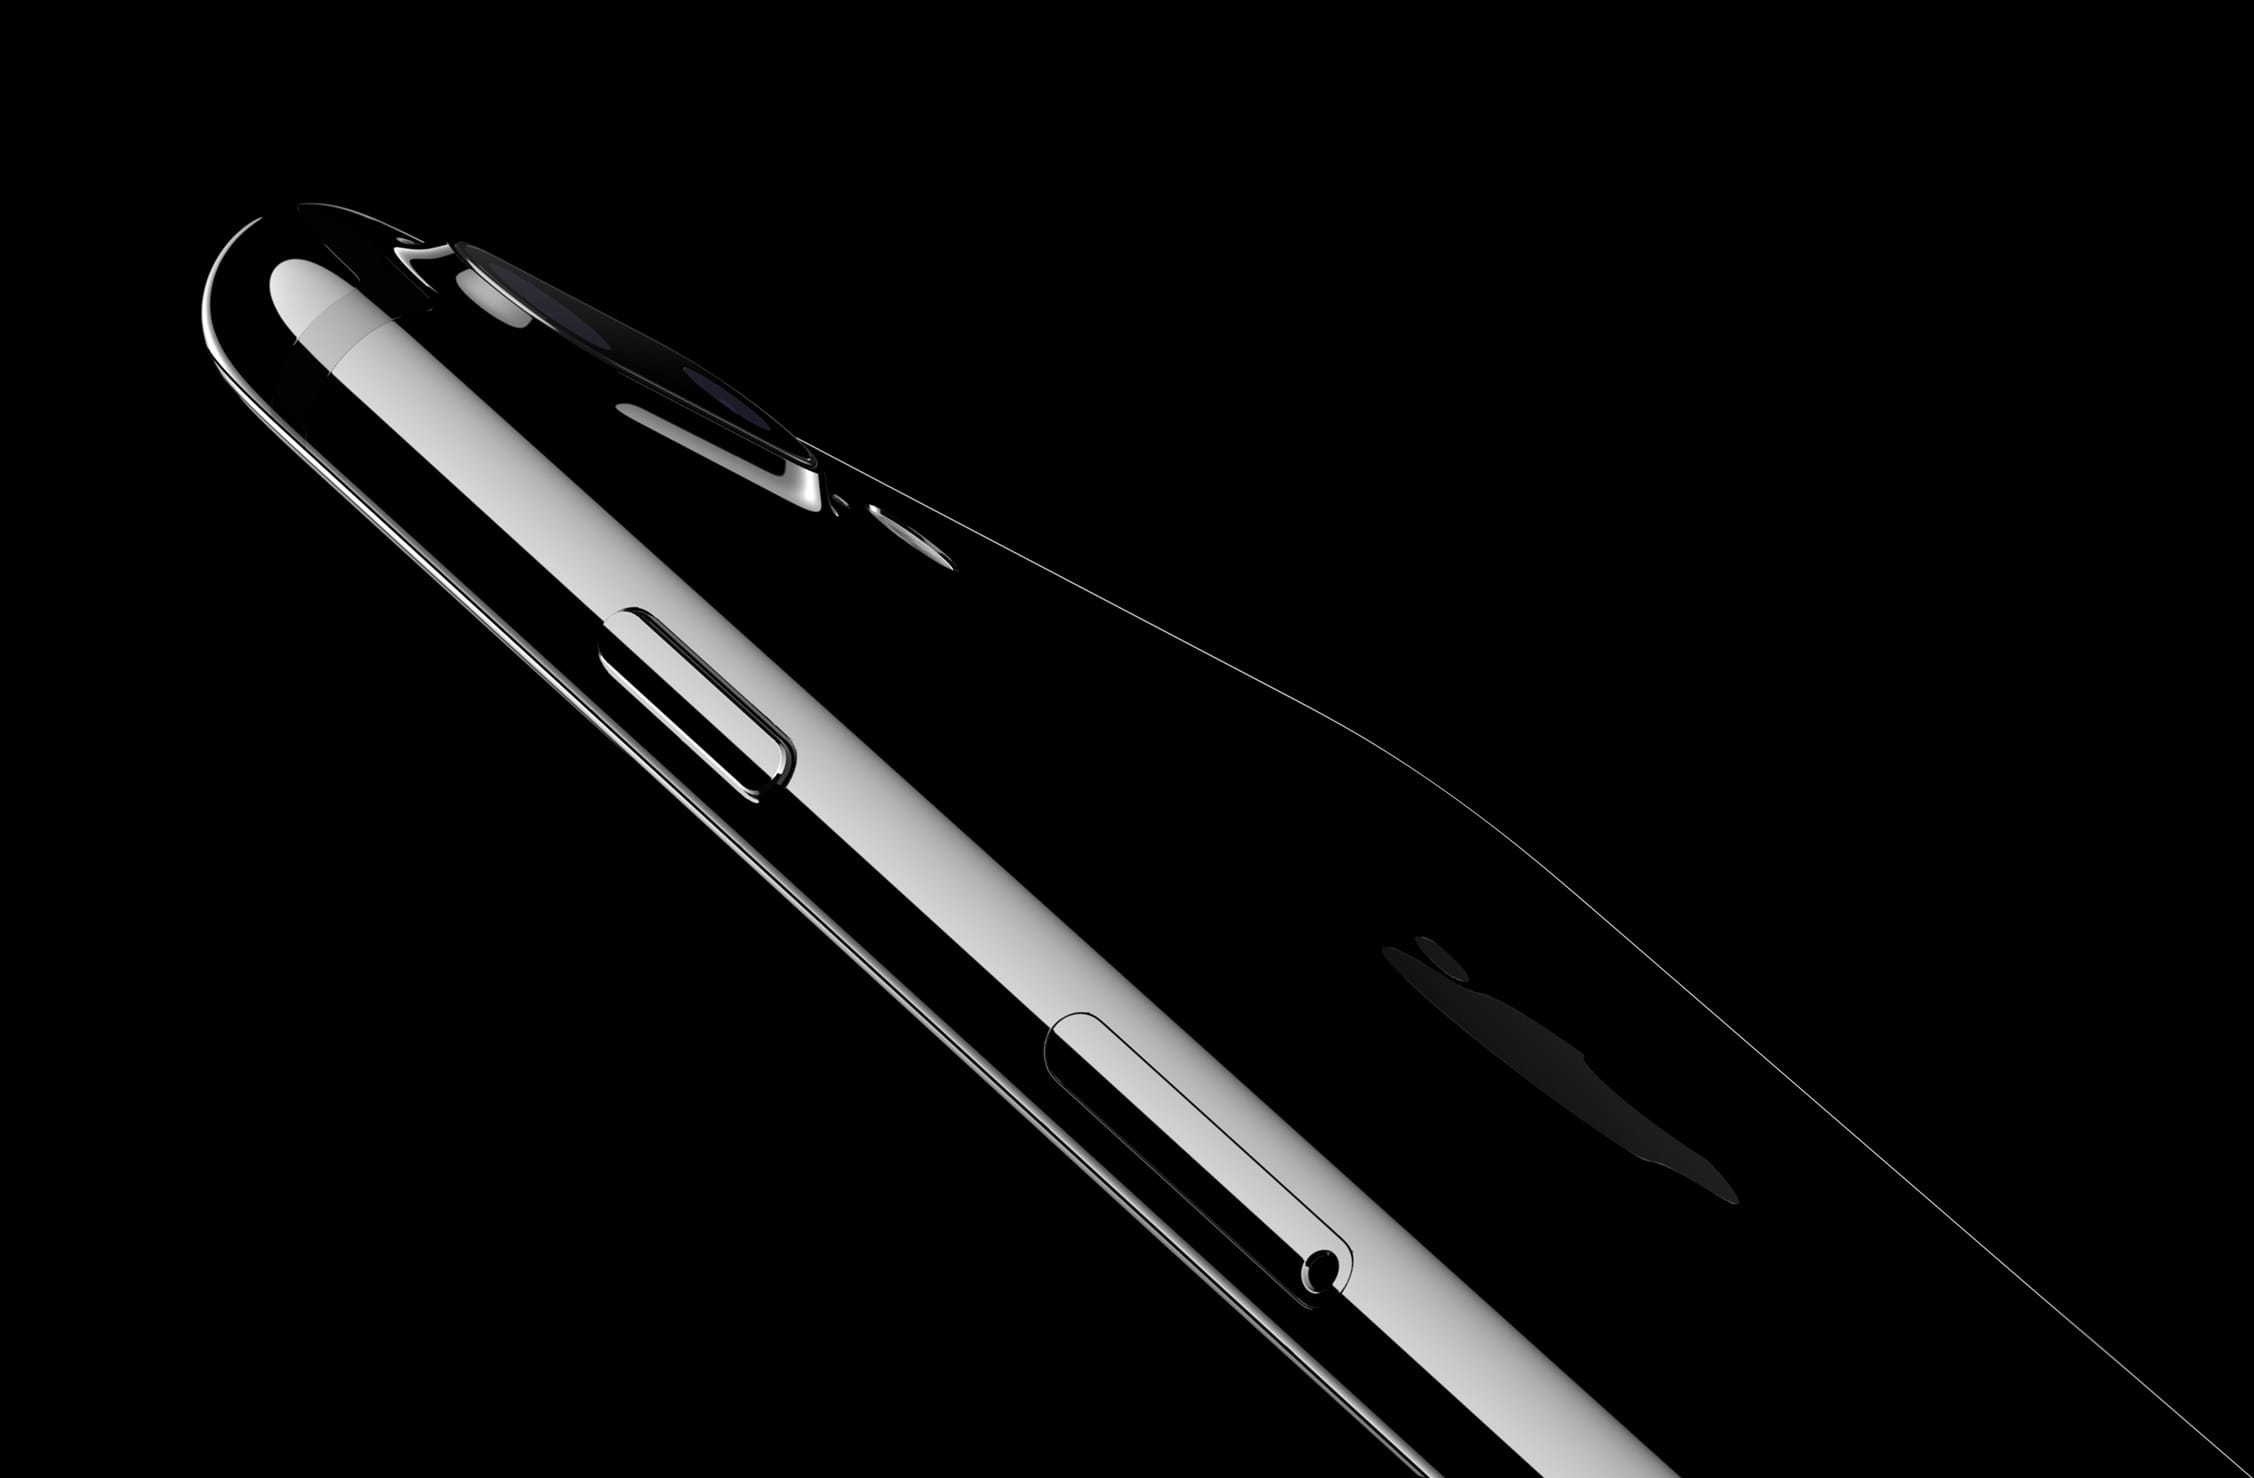 iphone-7-jet-black-side-hero